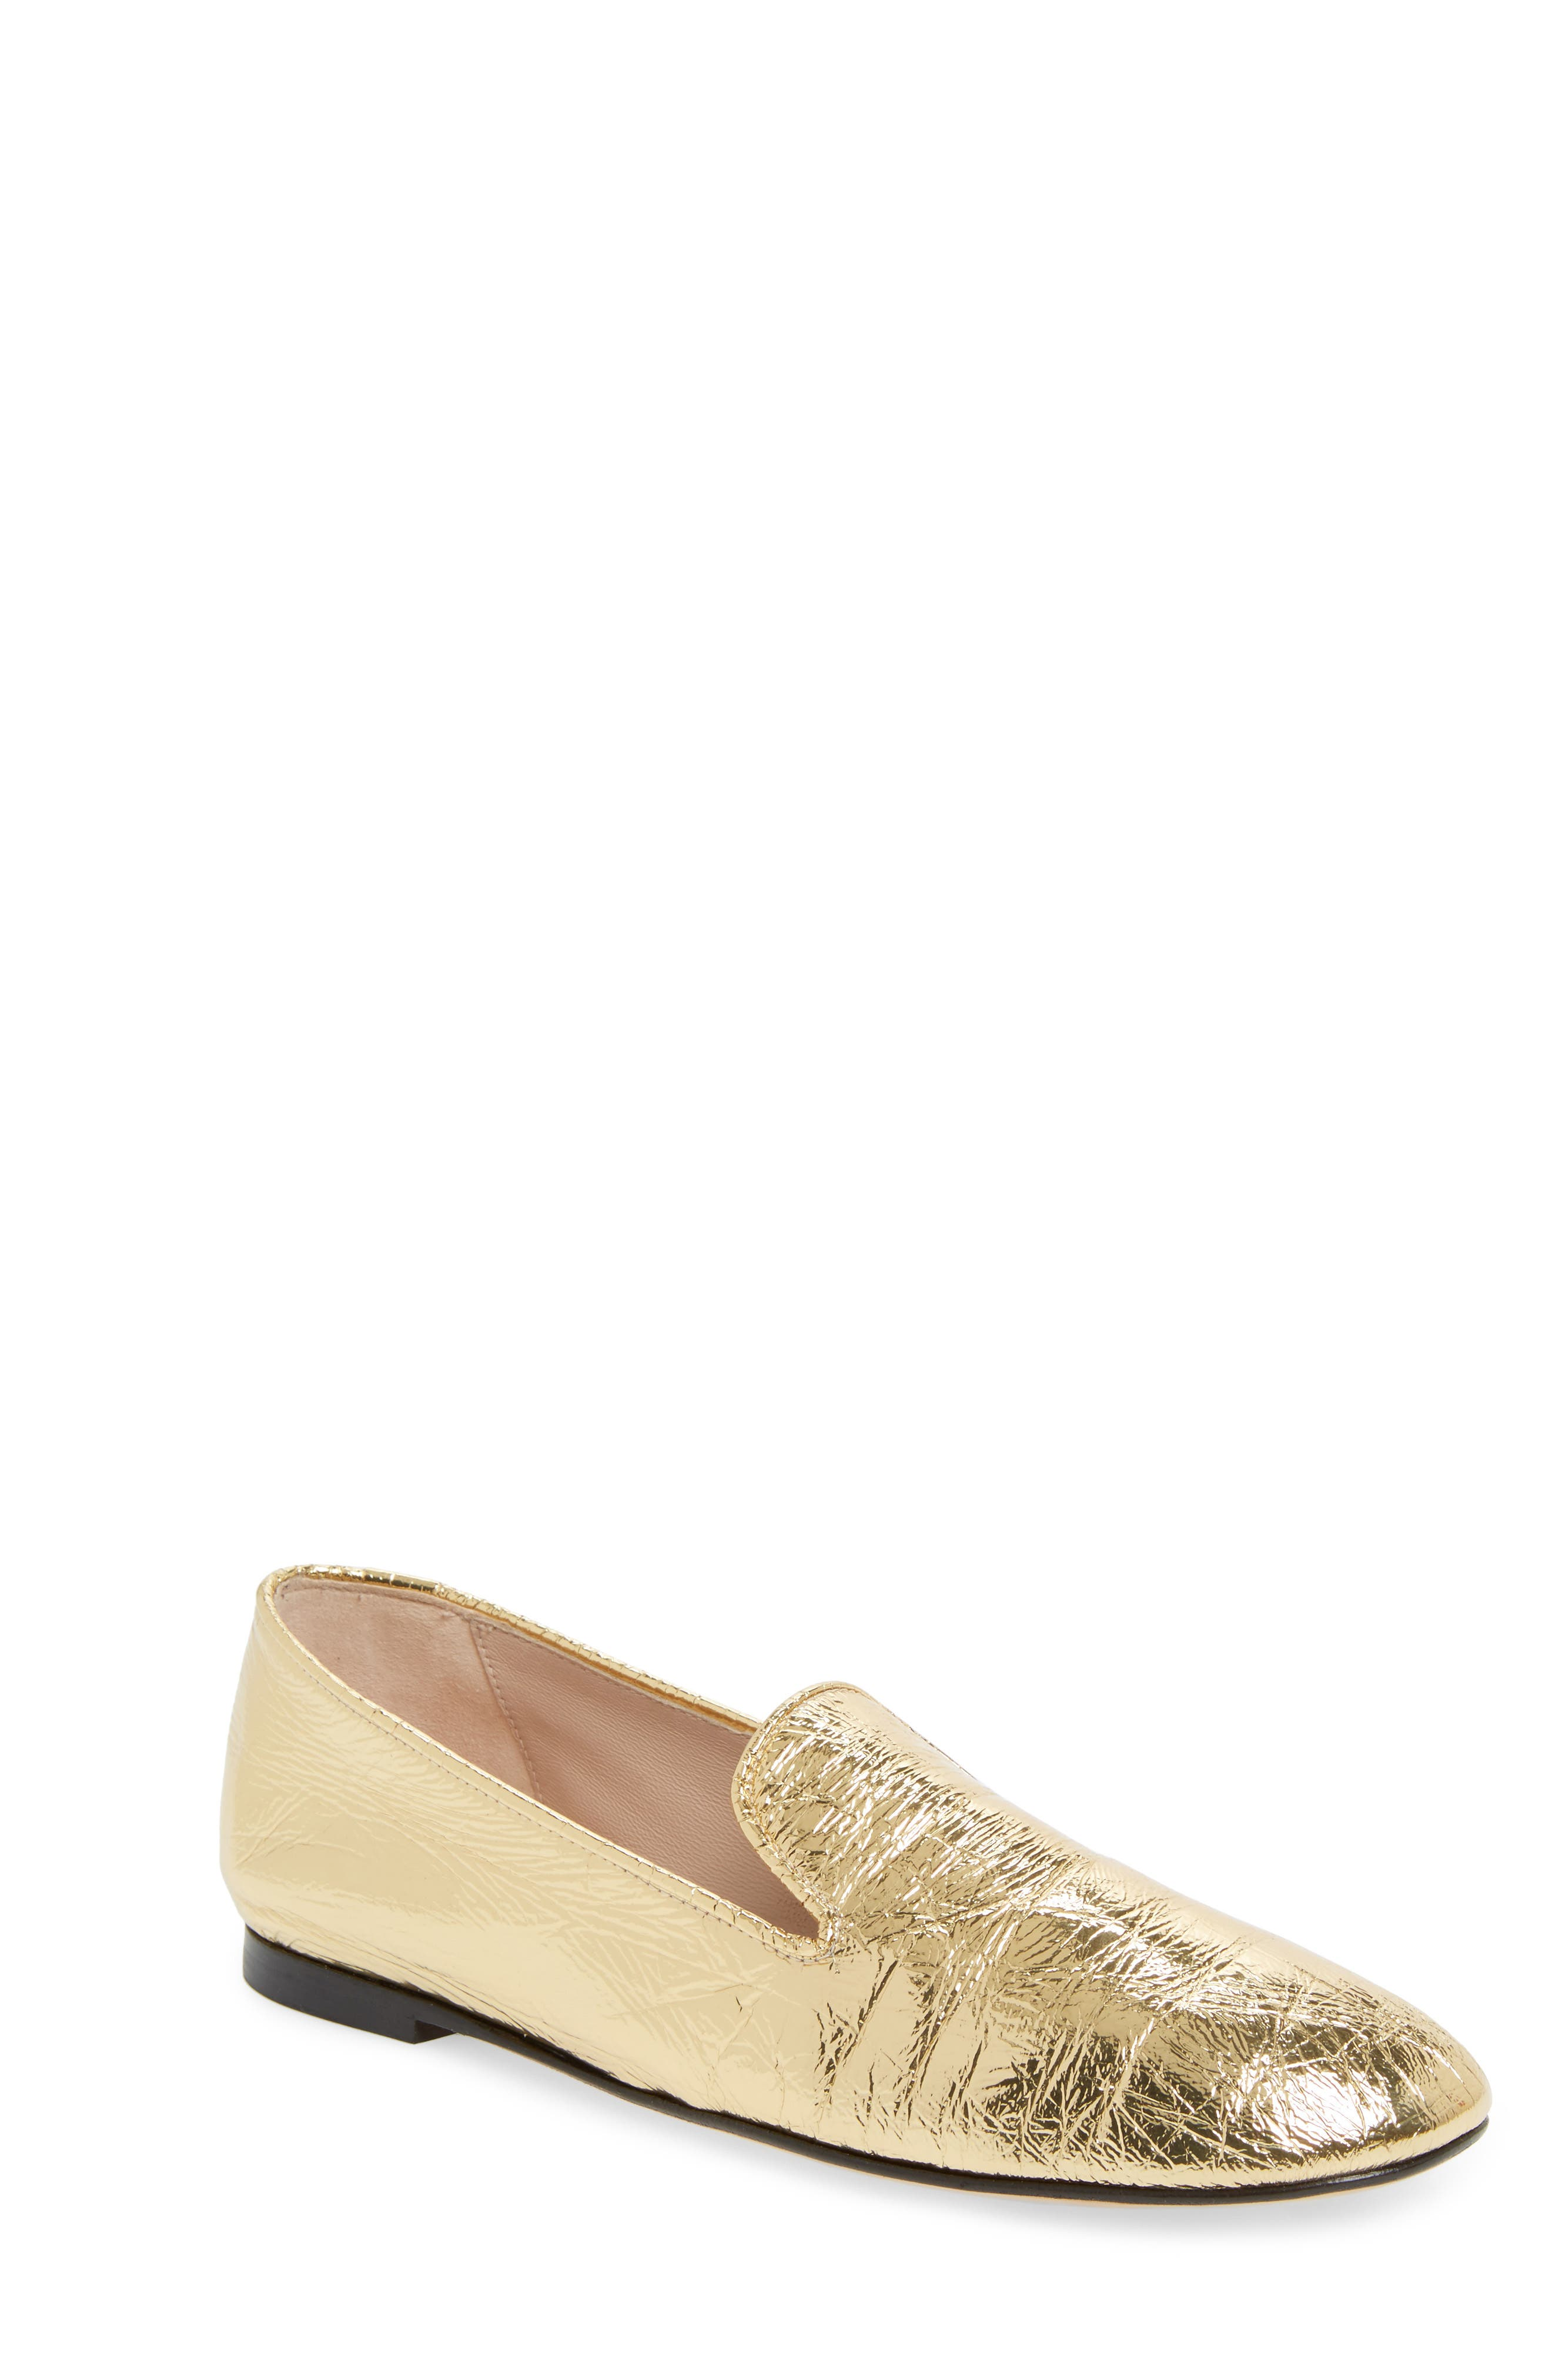 Myguy Venetian Loafer,                         Main,                         color, Gold Look